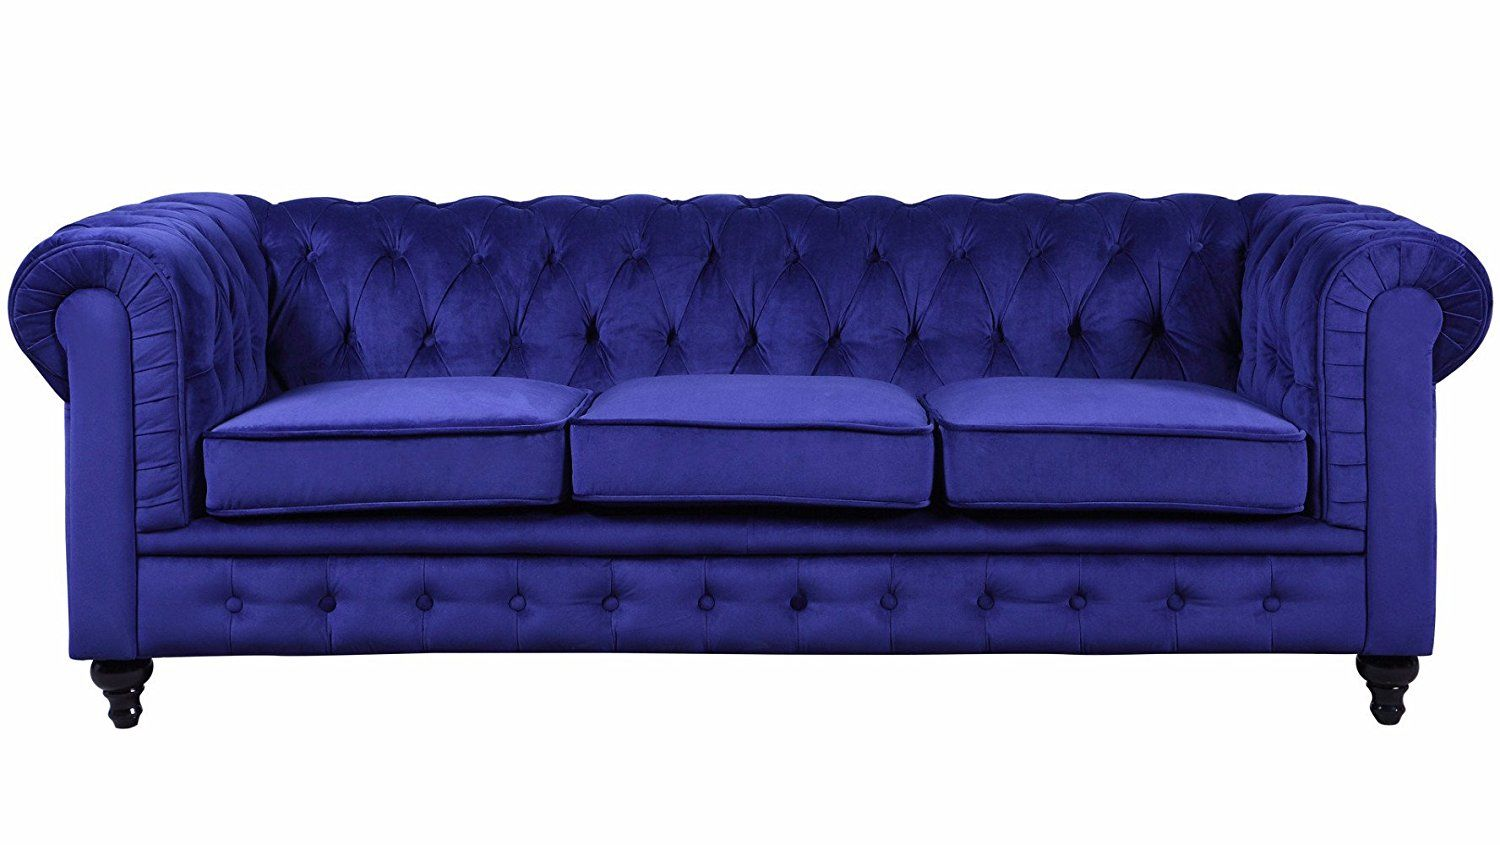 excellent loveseat sleeper sofa ikea gallery-Cute Loveseat Sleeper sofa Ikea Wallpaper